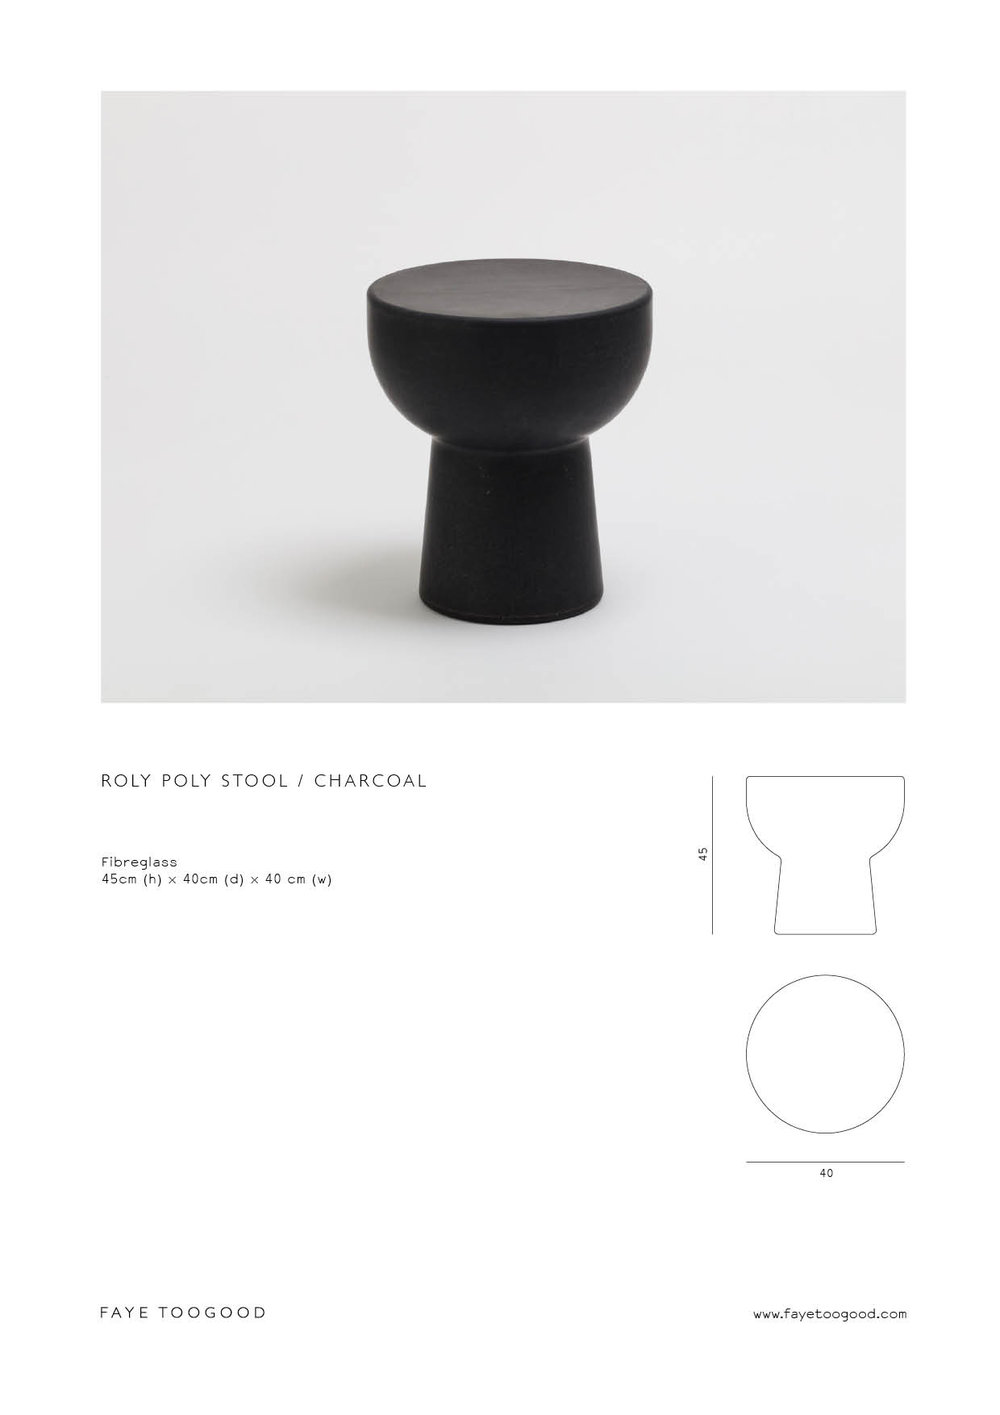 roly poly stool charcoal .jpg